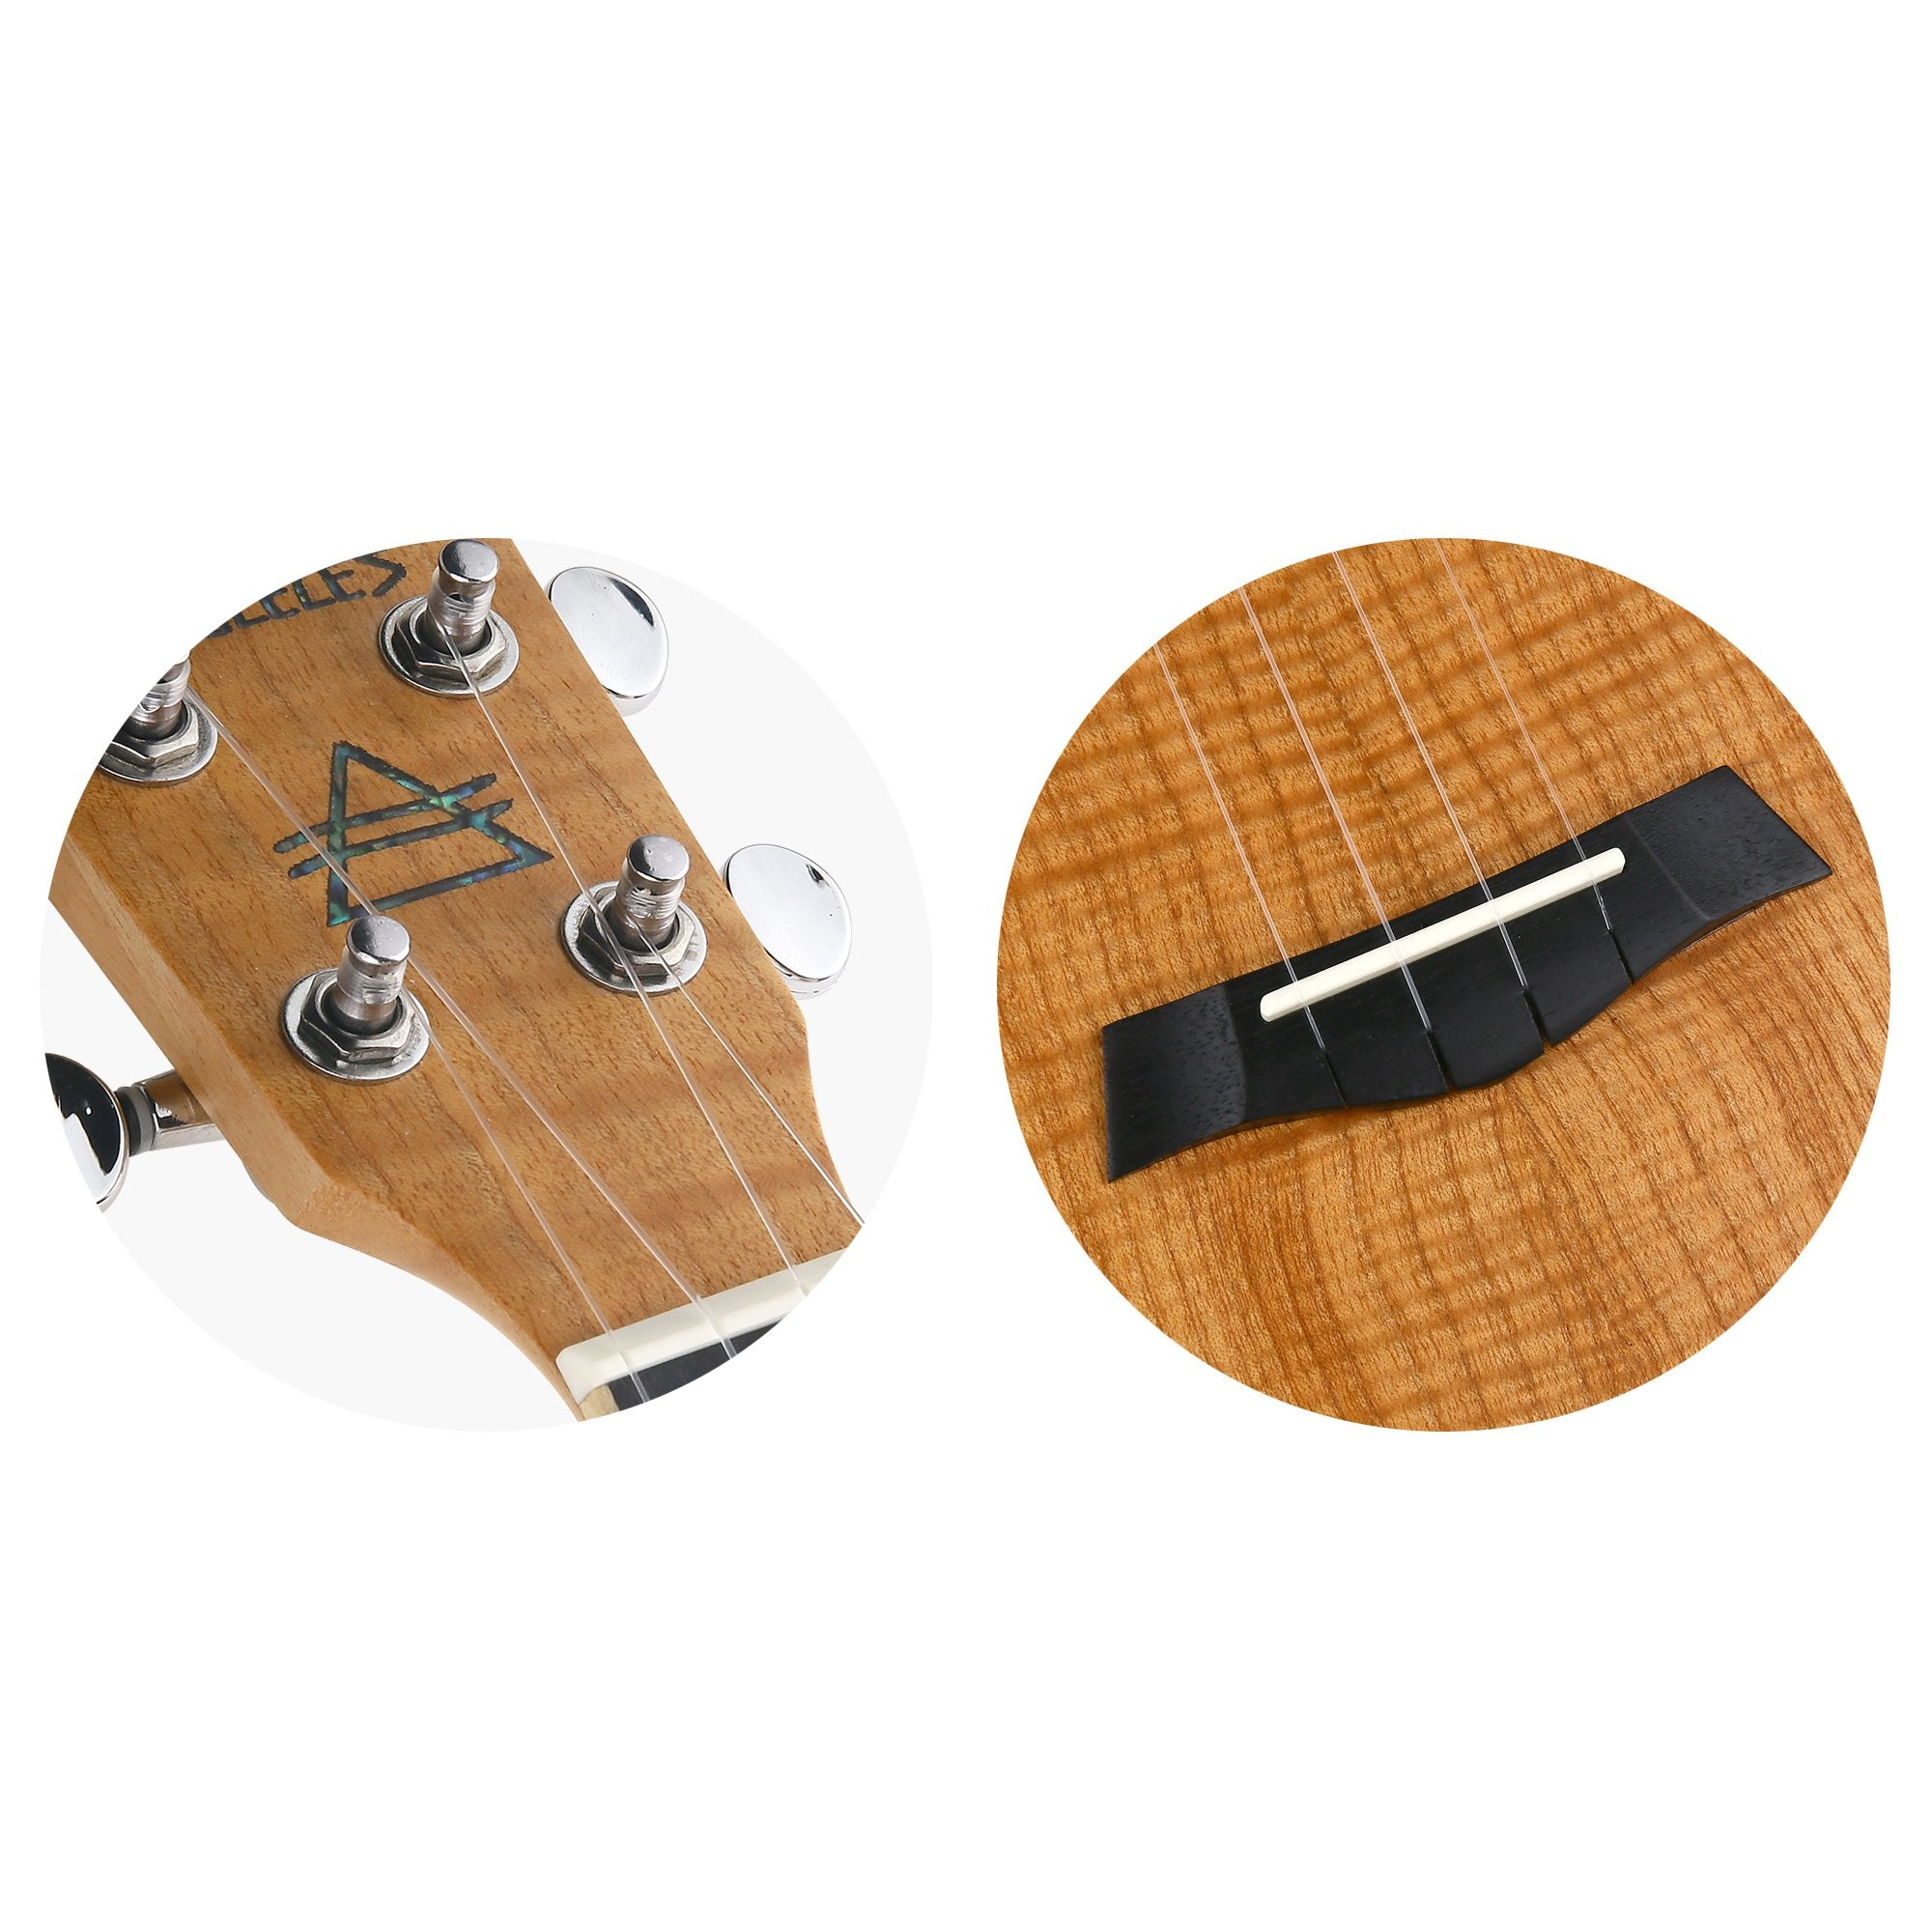 Bondi Tiger Oak Baritone Ukulele Bundle